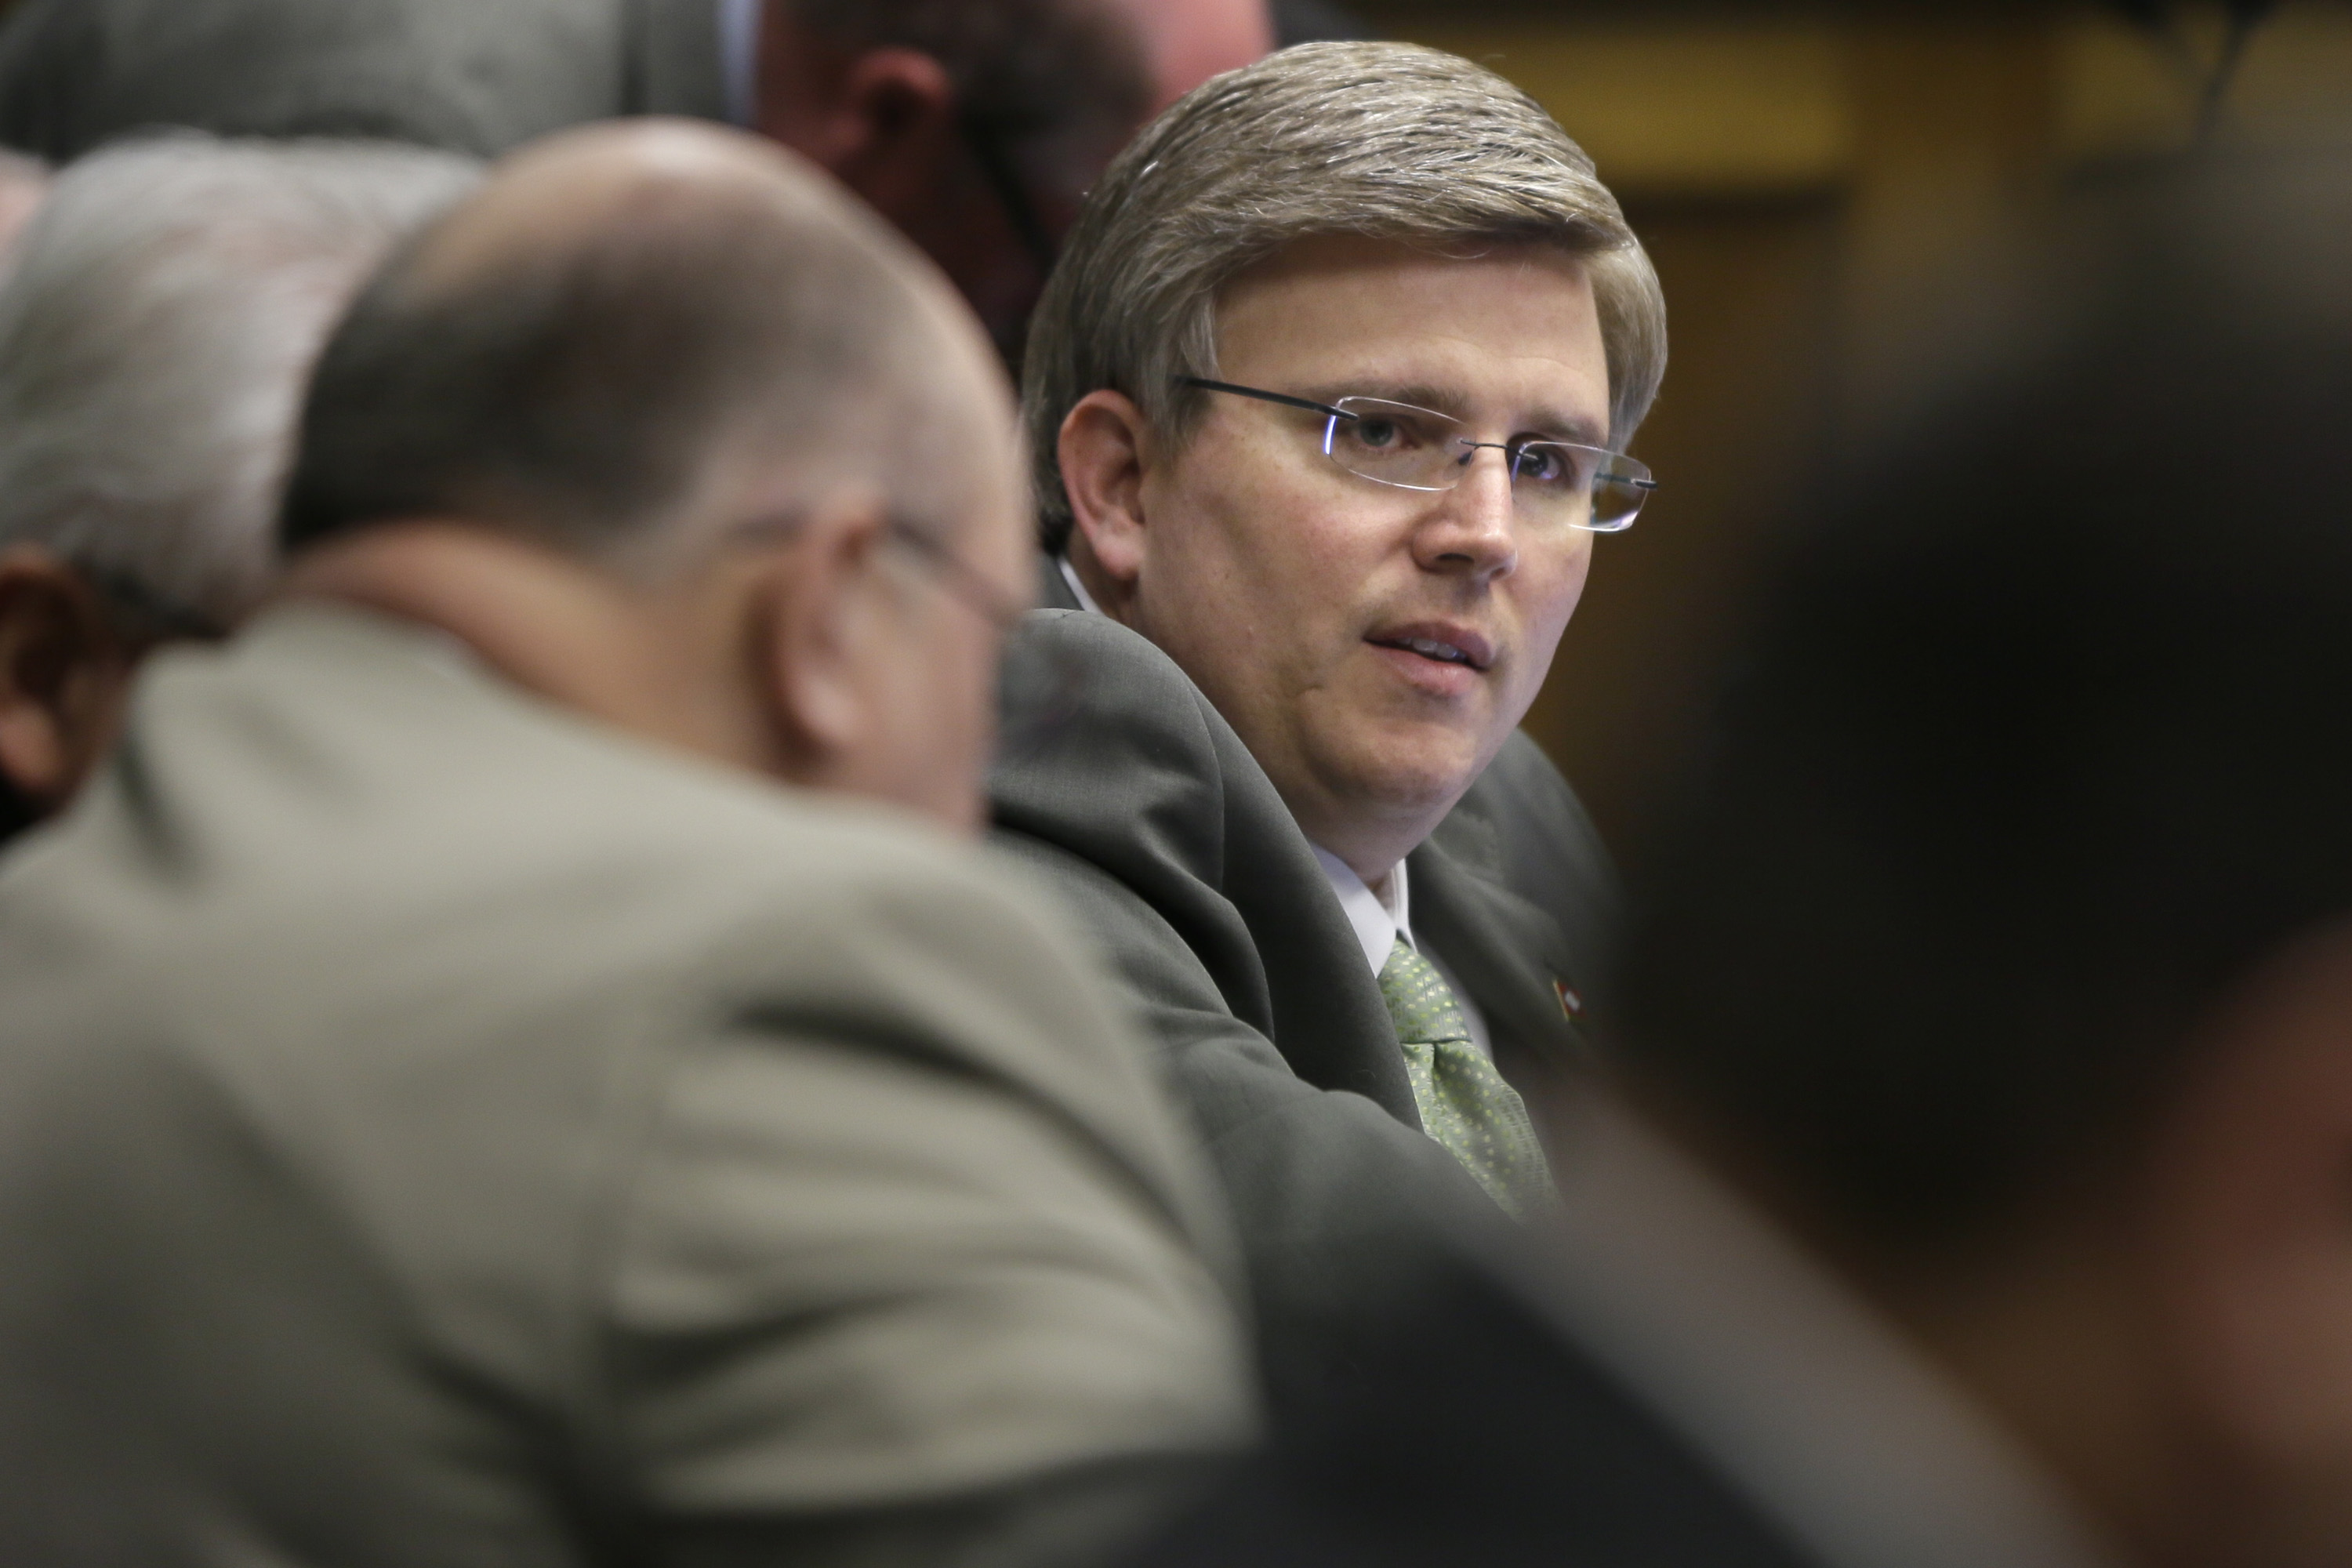 Rep. Justin T. Harris, R-West Fork, questions a witness during a meeting of the House Committee on Education at the Arkansas state Capitol in Little Rock, Ark. on Feb. 26, 2015.